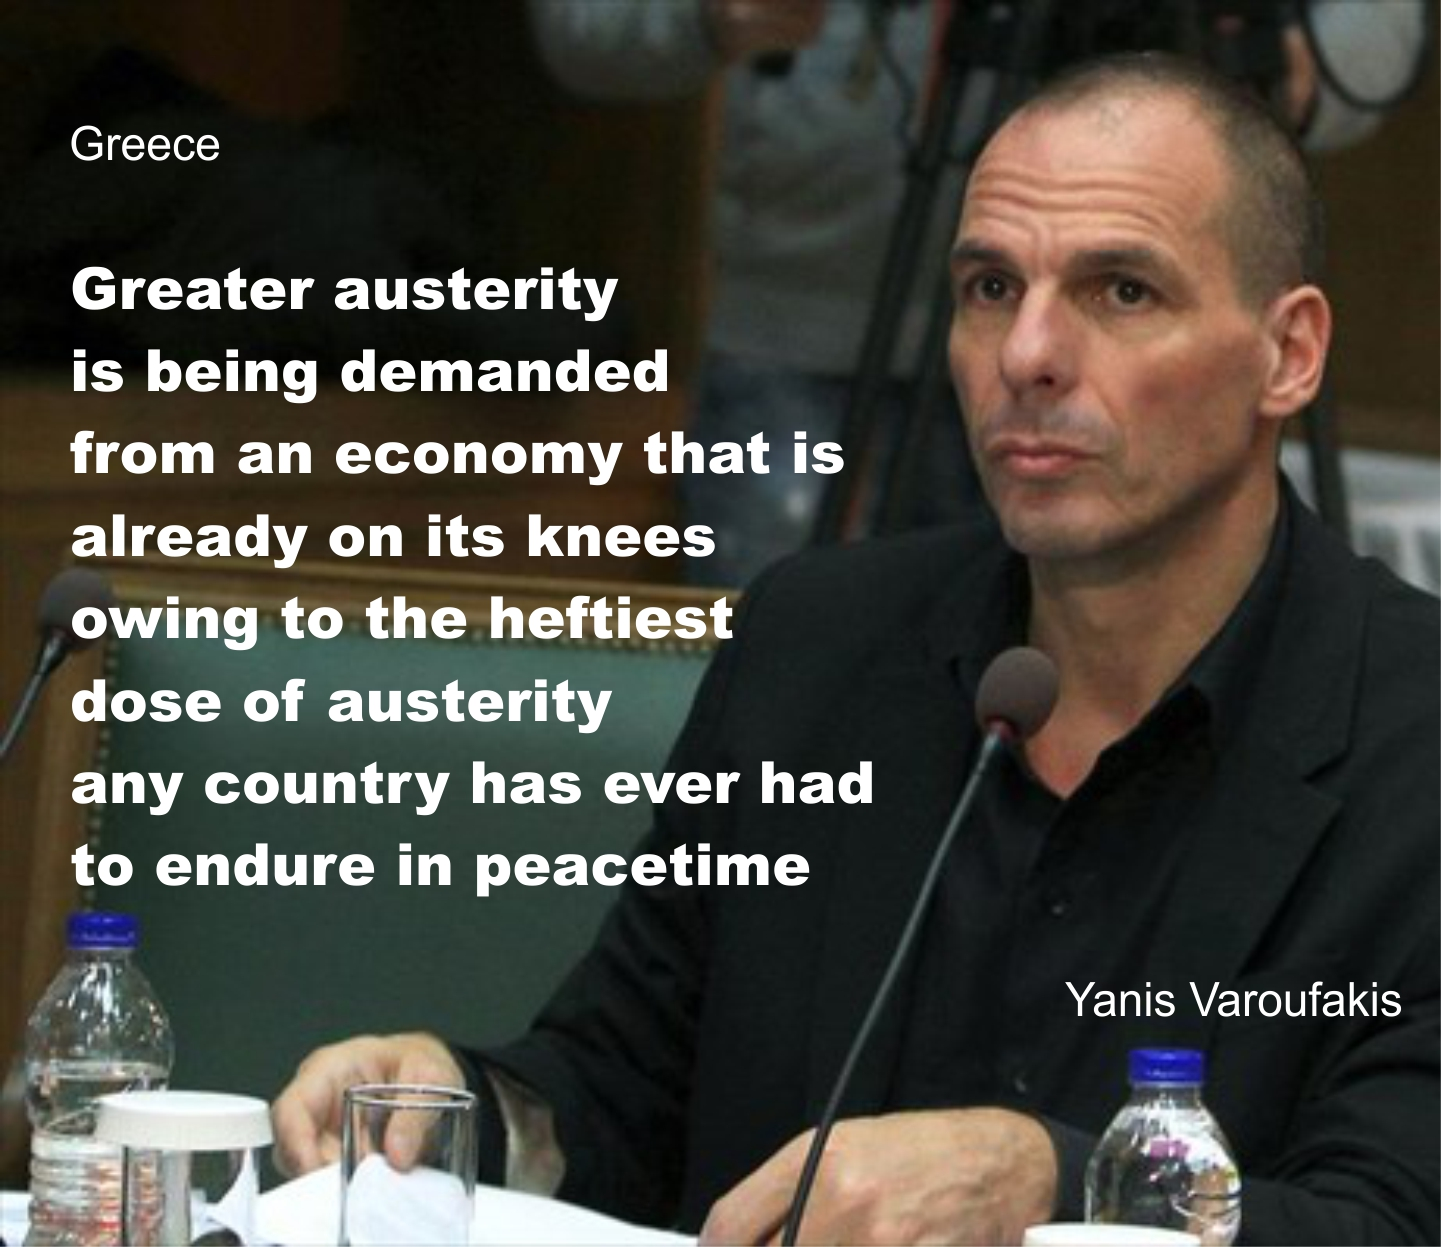 http://www.project-syndicate.org/commentary/speech-of-hope-for-greece-by-yanis-varoufakis-2015-06